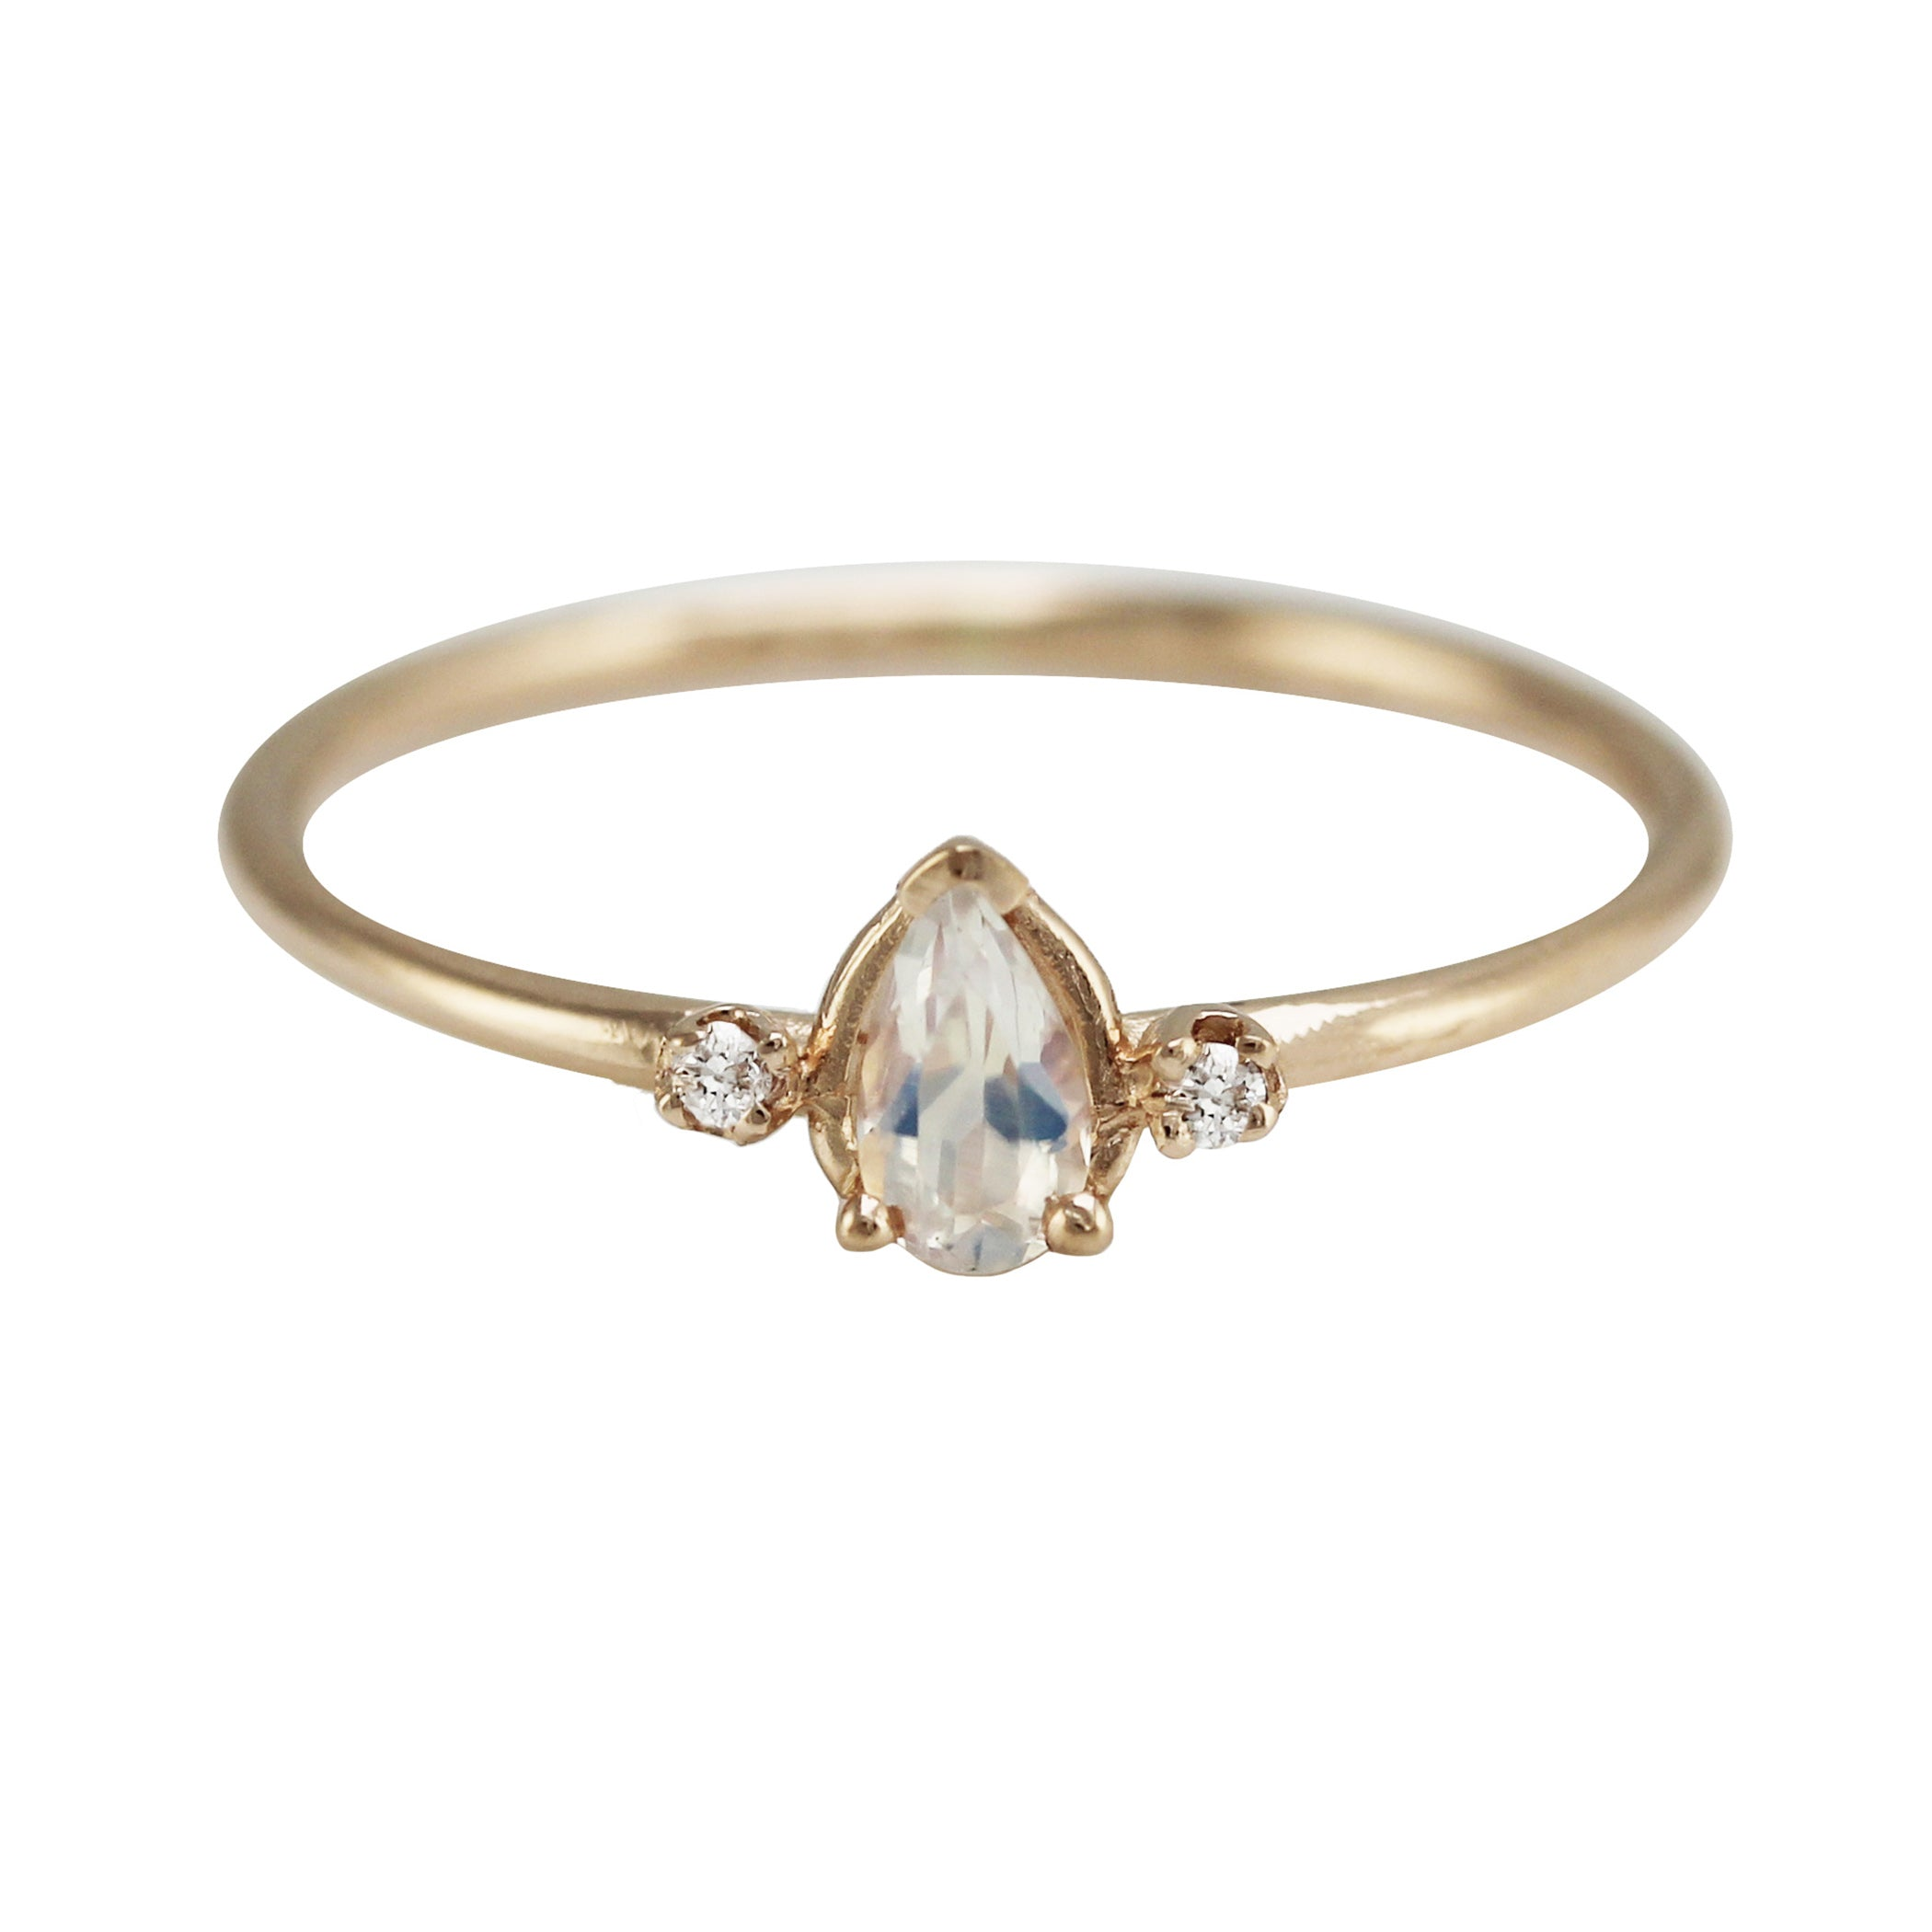 van silver oval moonstone london product rings ring peterson